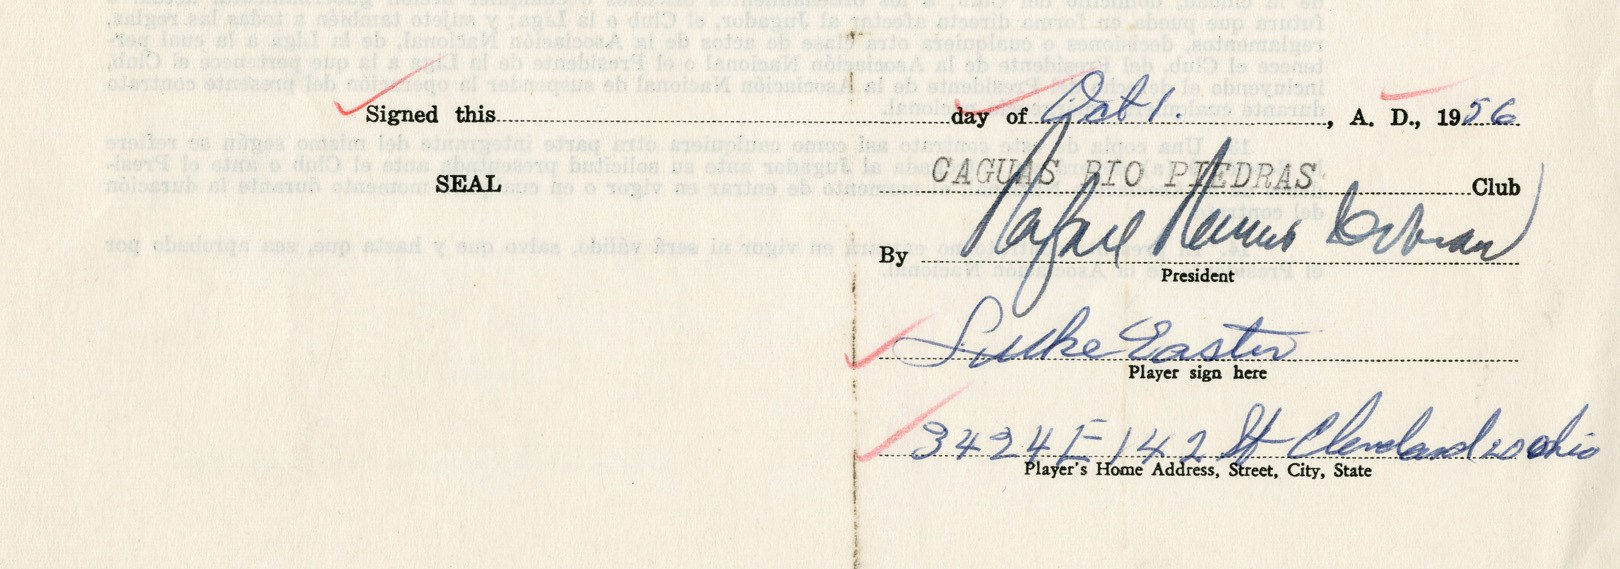 1956-57 Luke Easter Signed Baseball Contract & Signed Letter